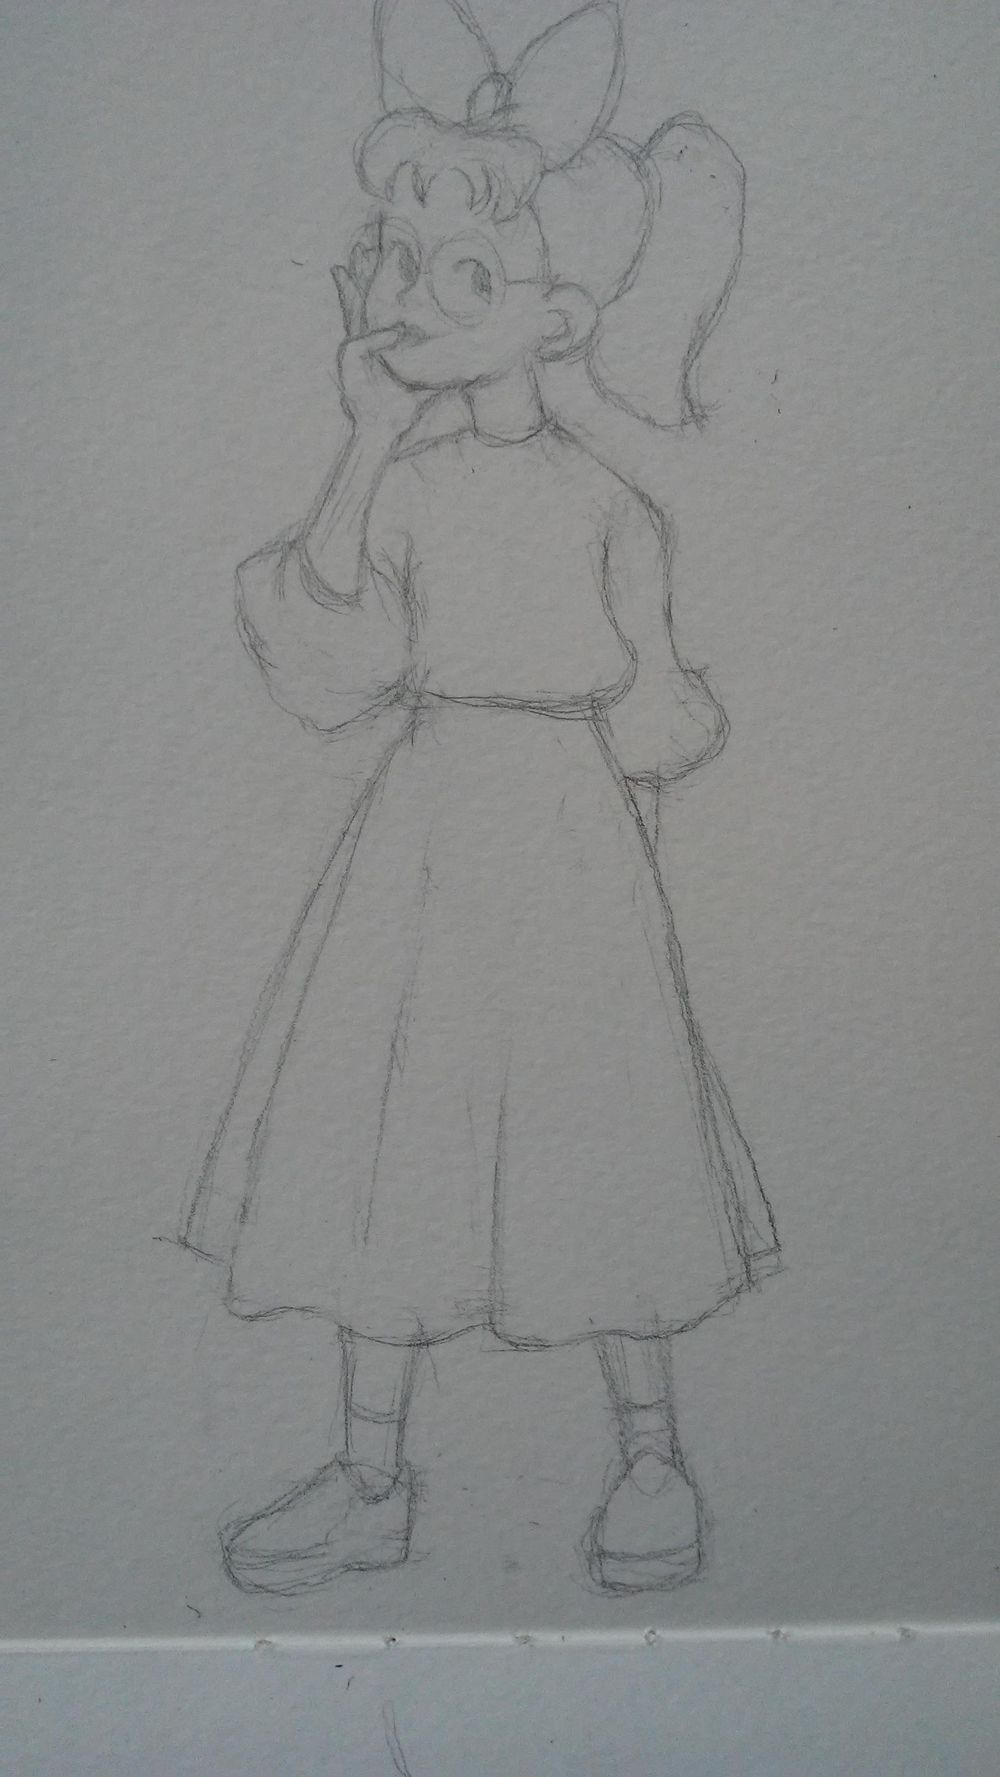 Little Miss - image 1 - student project